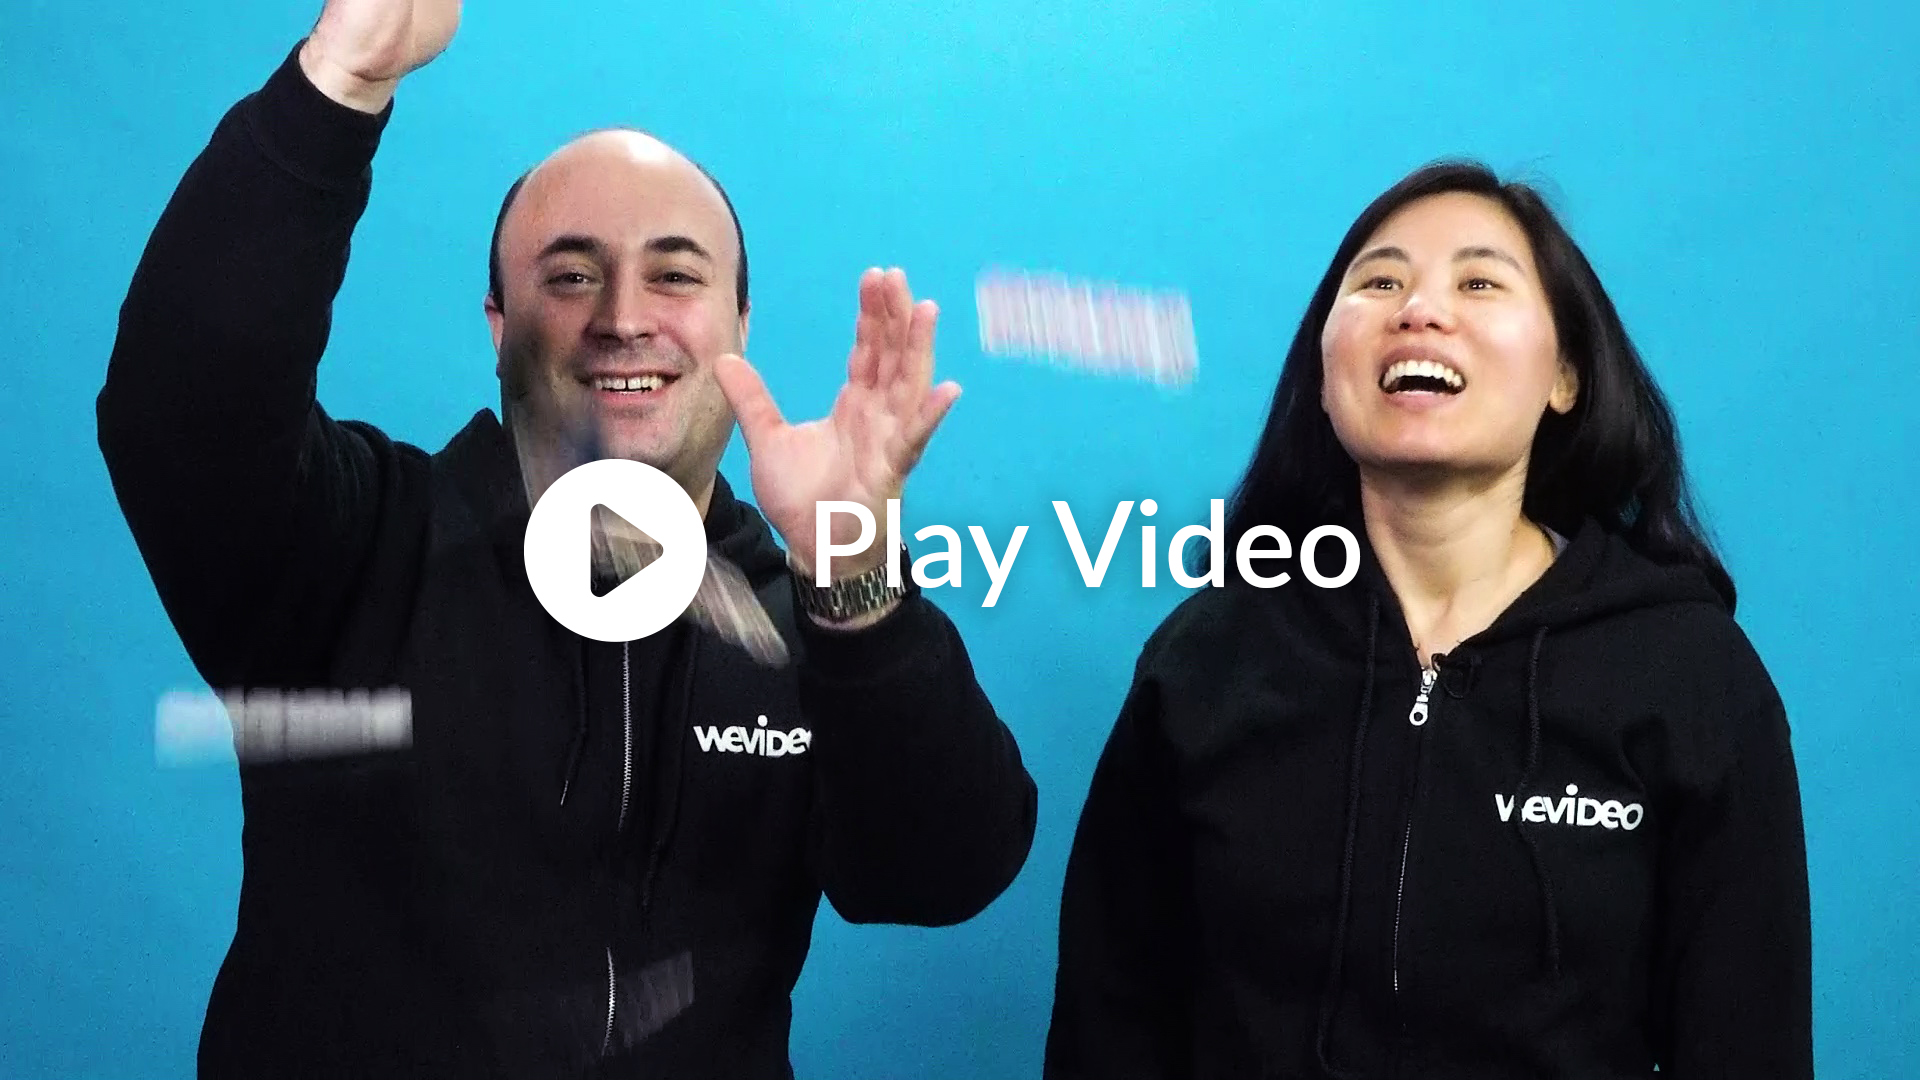 January 2019 newsletter - play video